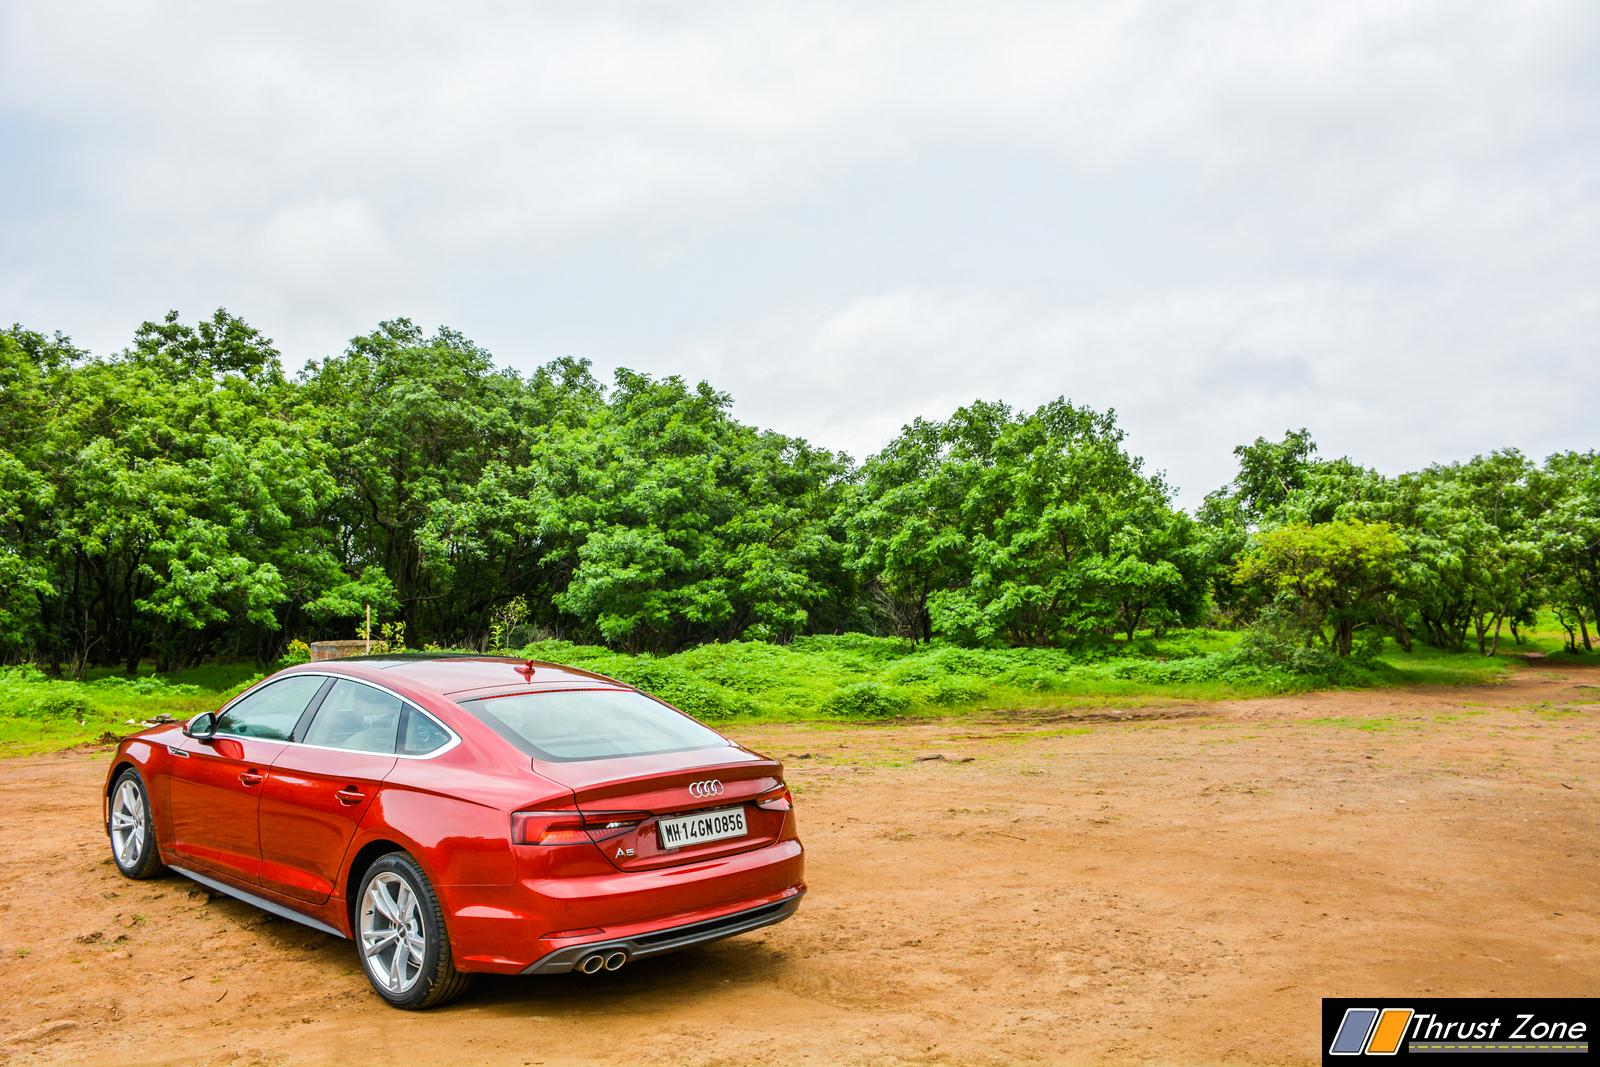 https://www.thrustzone.com/wp-content/uploads/2018/08/2018-Audi-A5-Diesel-India-Review-21.jpg